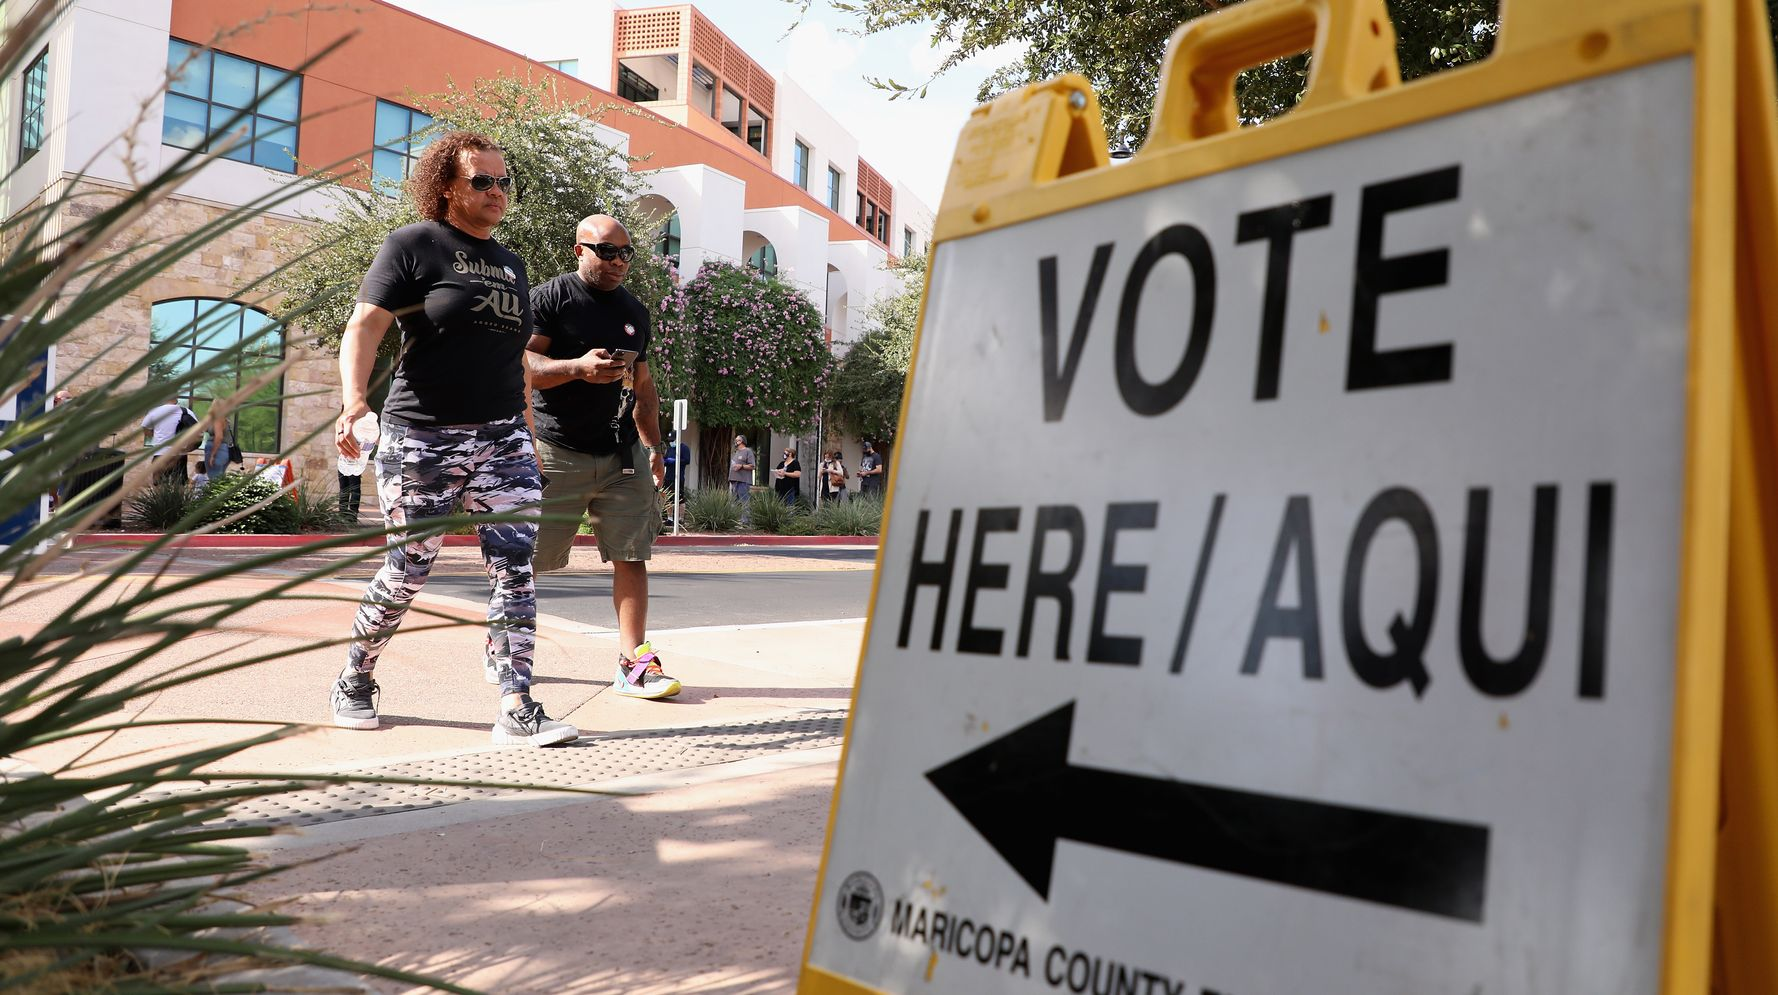 Arizona Gov. Signs Bill To Purge Early Voters Who Don't Vote By Mail In 2 Election Cycles